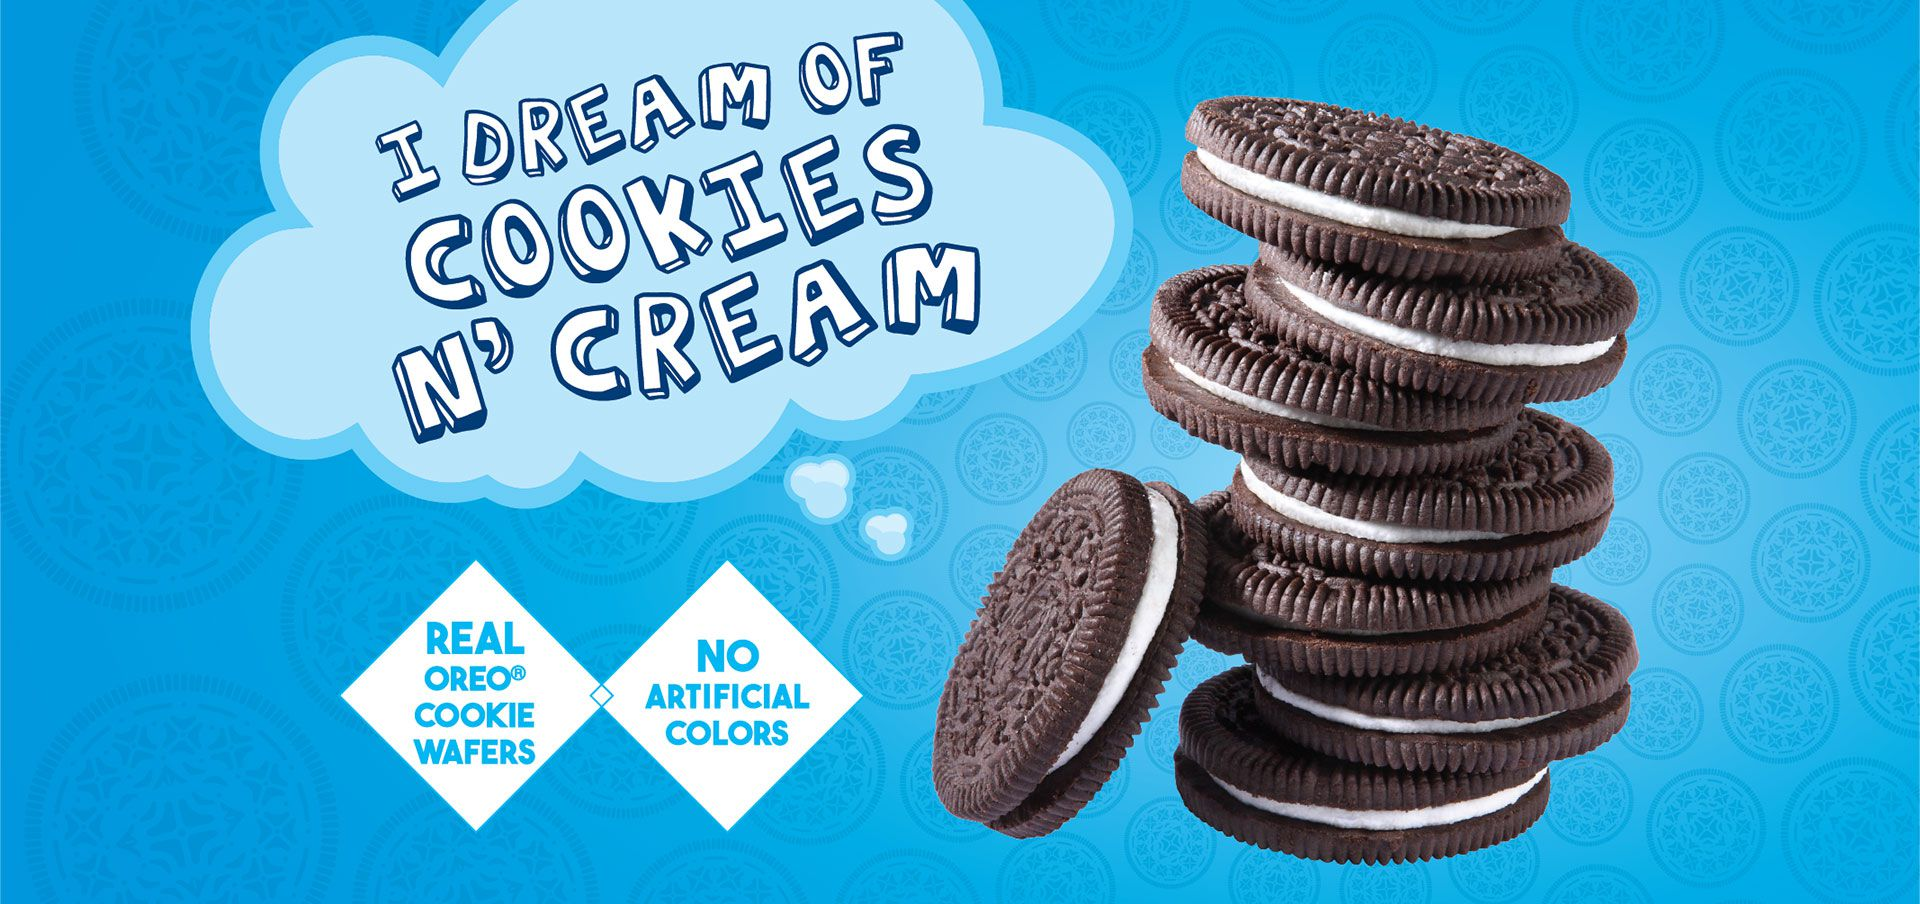 i dream of cookies n' cream label image